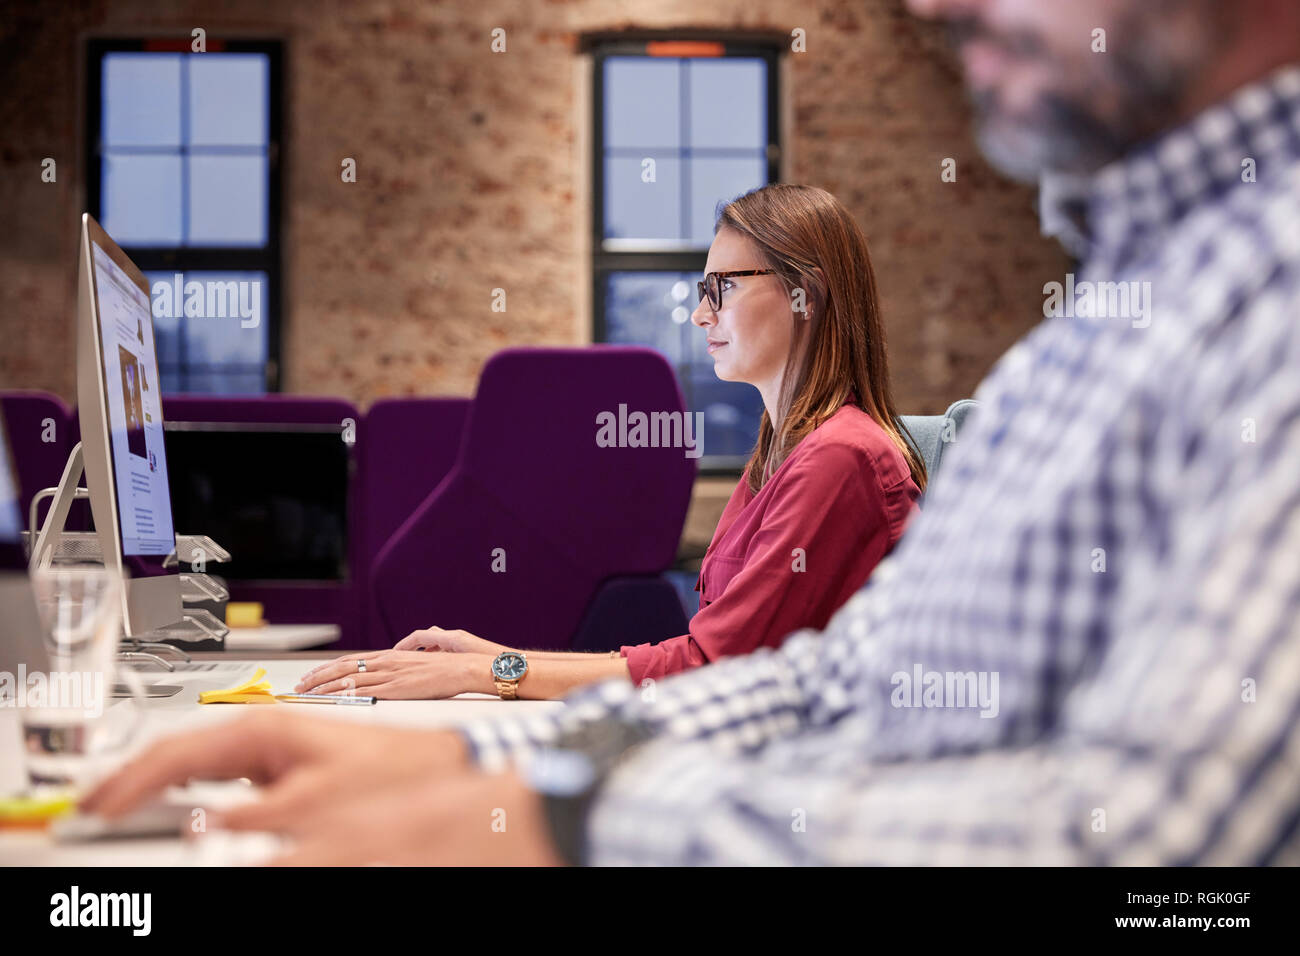 Woman  working focused on PC - Stock Image